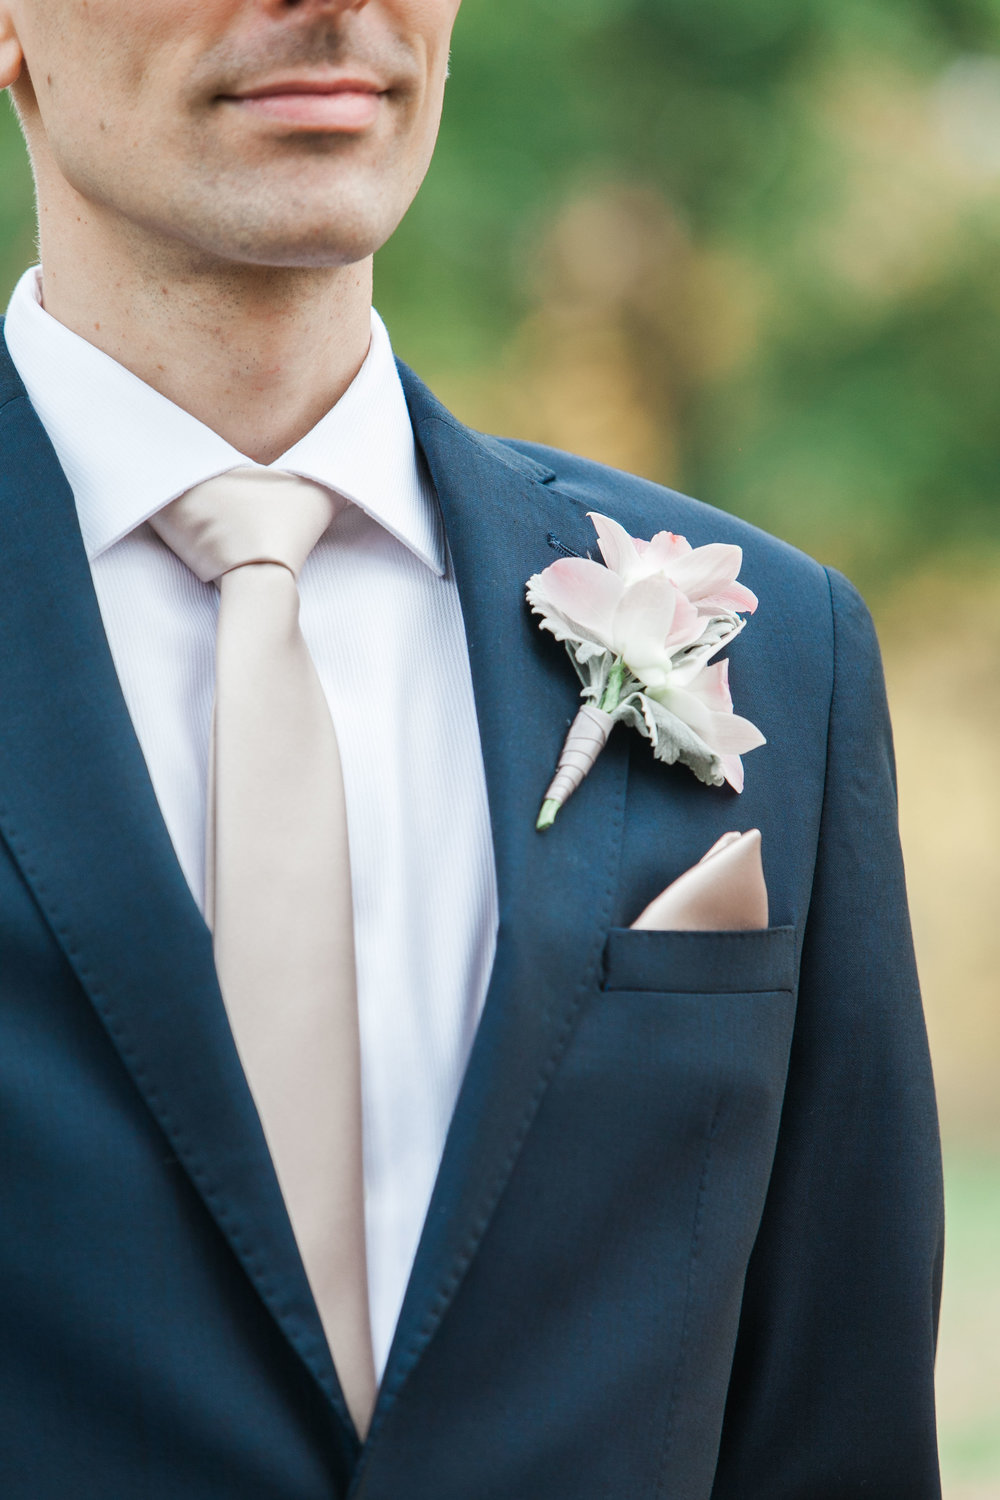 Groom wearing navy suit and blush tie